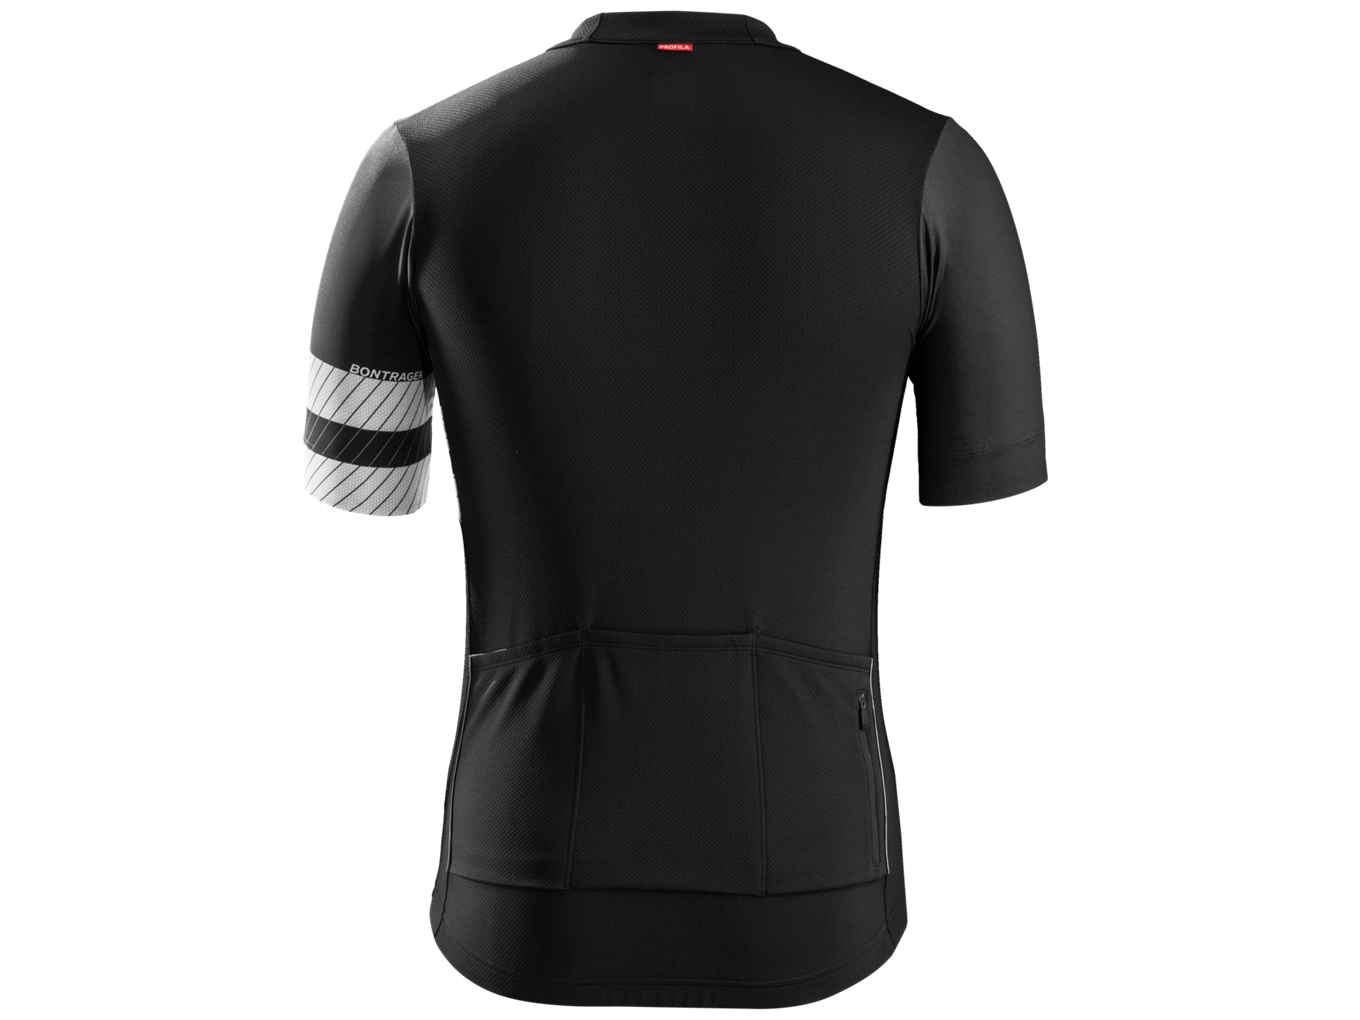 Bontrager Circuit Cycling Jersey. Overview  Tech specs  Sizing   fit   Reviews  FAQs  Buy. Prev. Next d0b953531